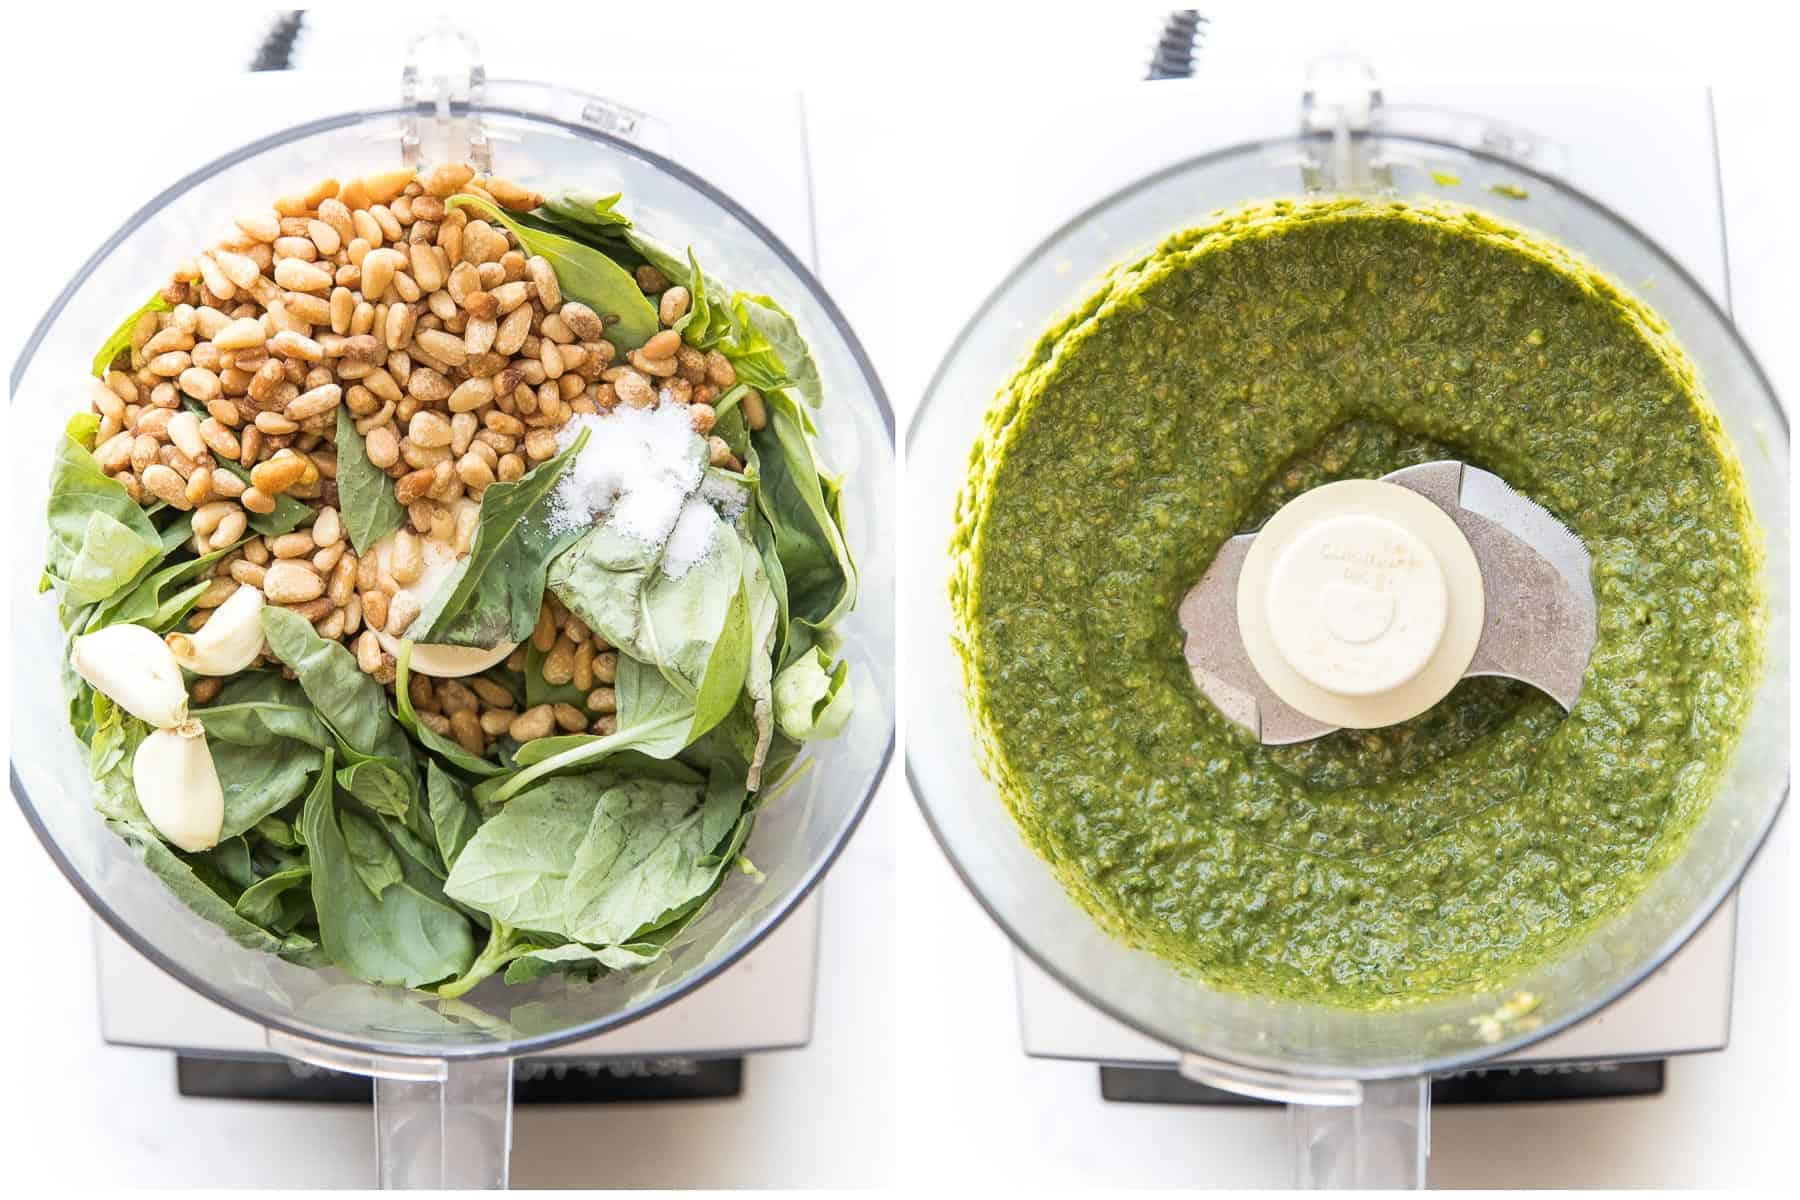 steps to making pesto sauce in a food processor